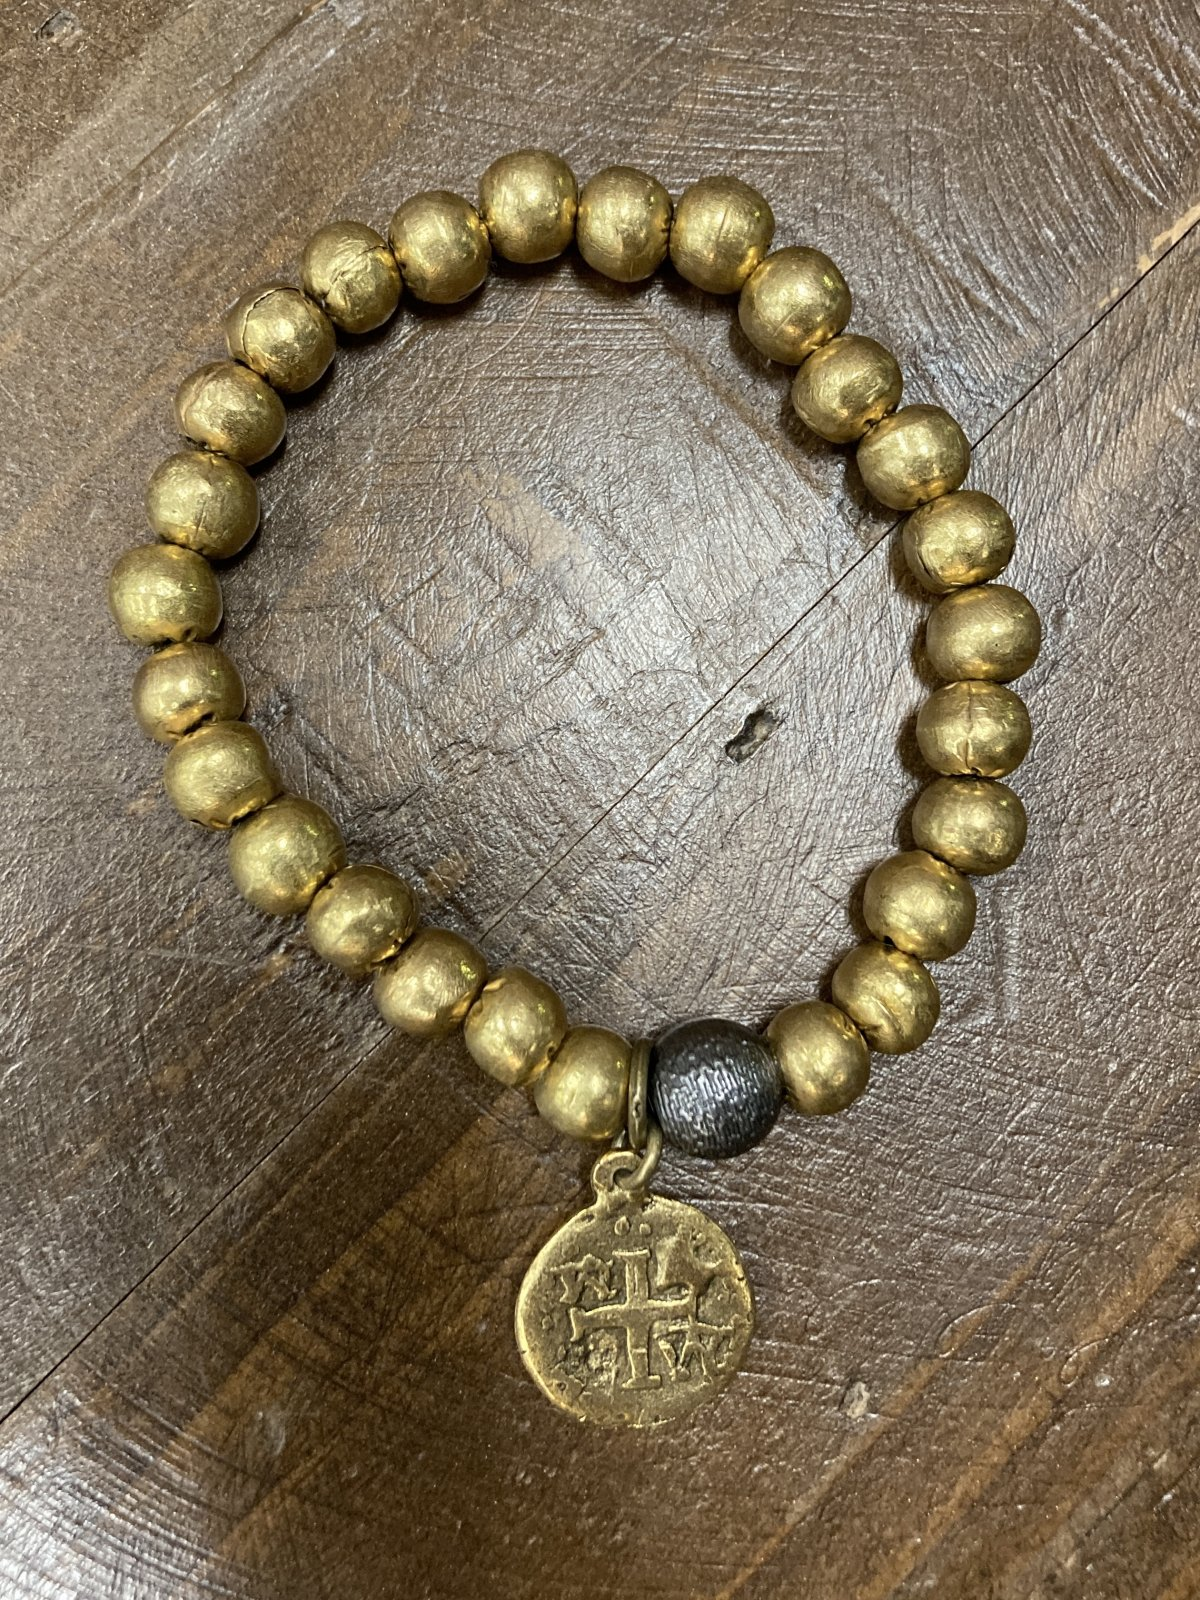 Gold Plated Beads With Charm